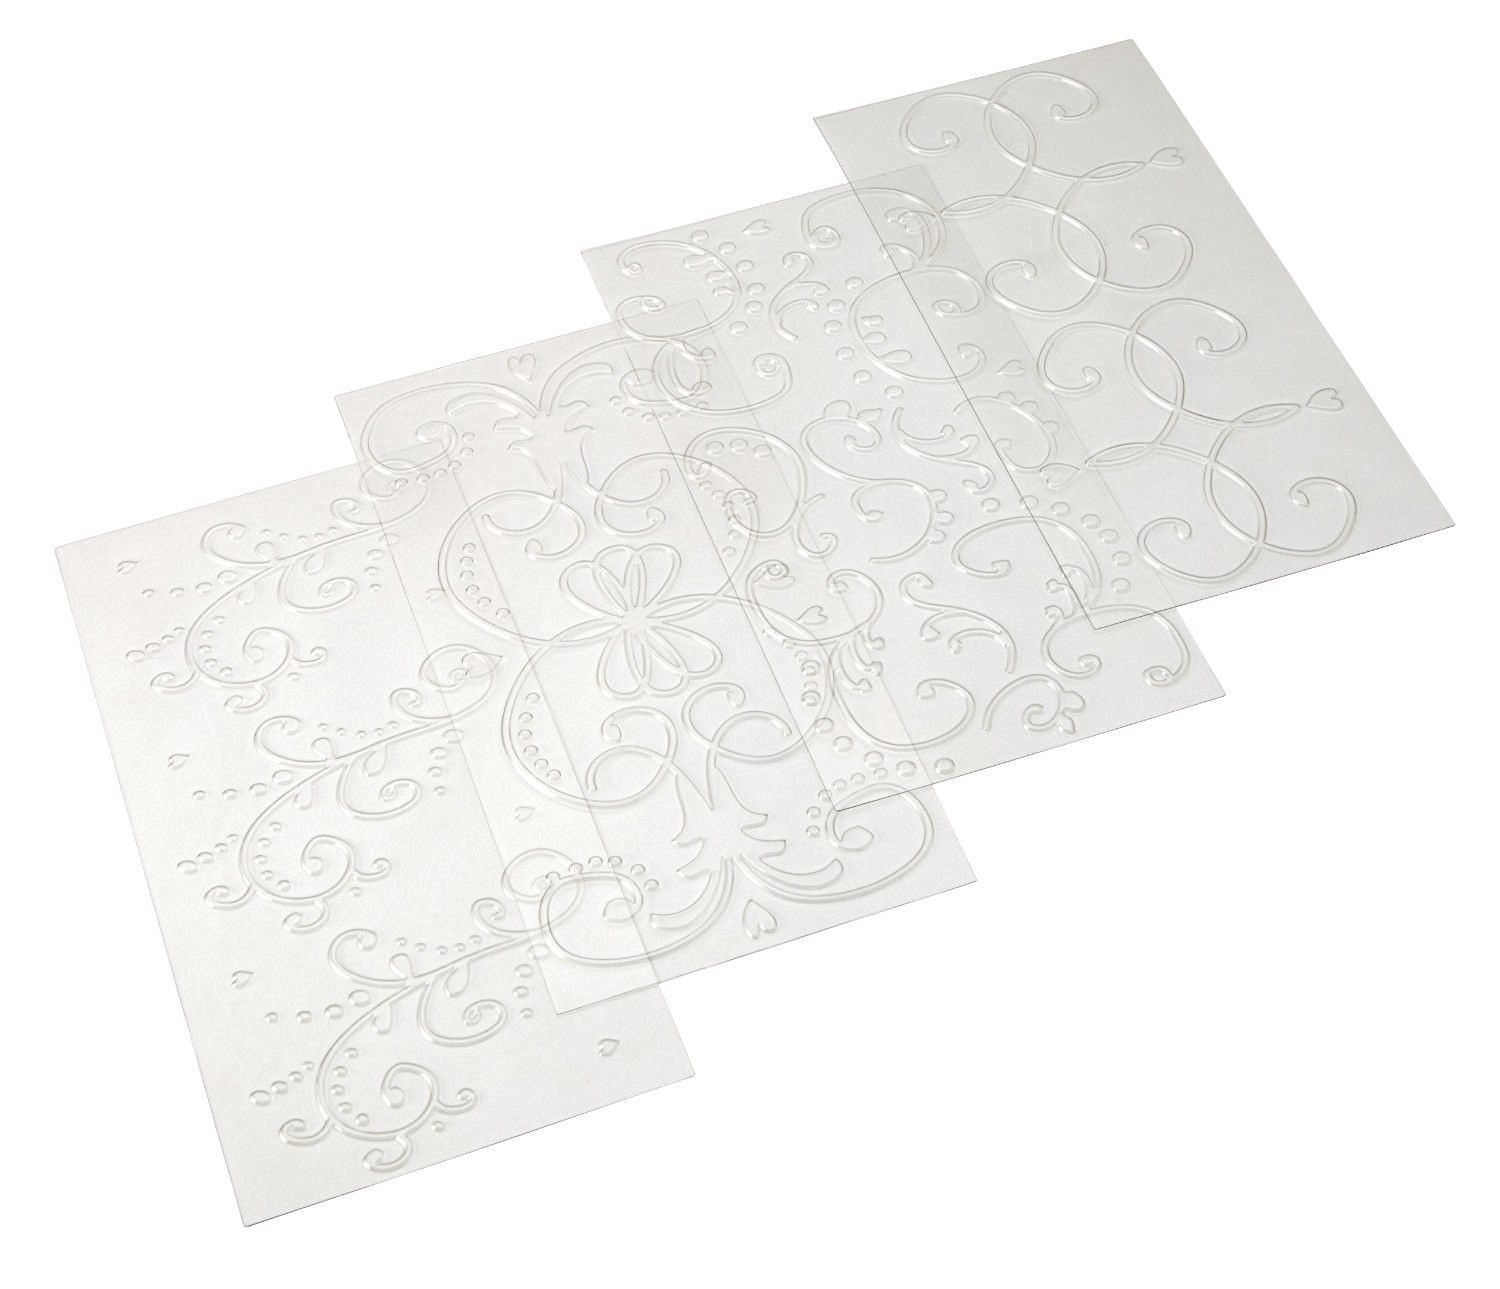 Generic YanHong-US3-151027-153 8yh2518yh Mat Set Clear 4-Piece Classic nt Imprint Cake Boss Cake Boss Fondant Imprint 4-Piece Decorating Tools corating Baking Mat Set Clear